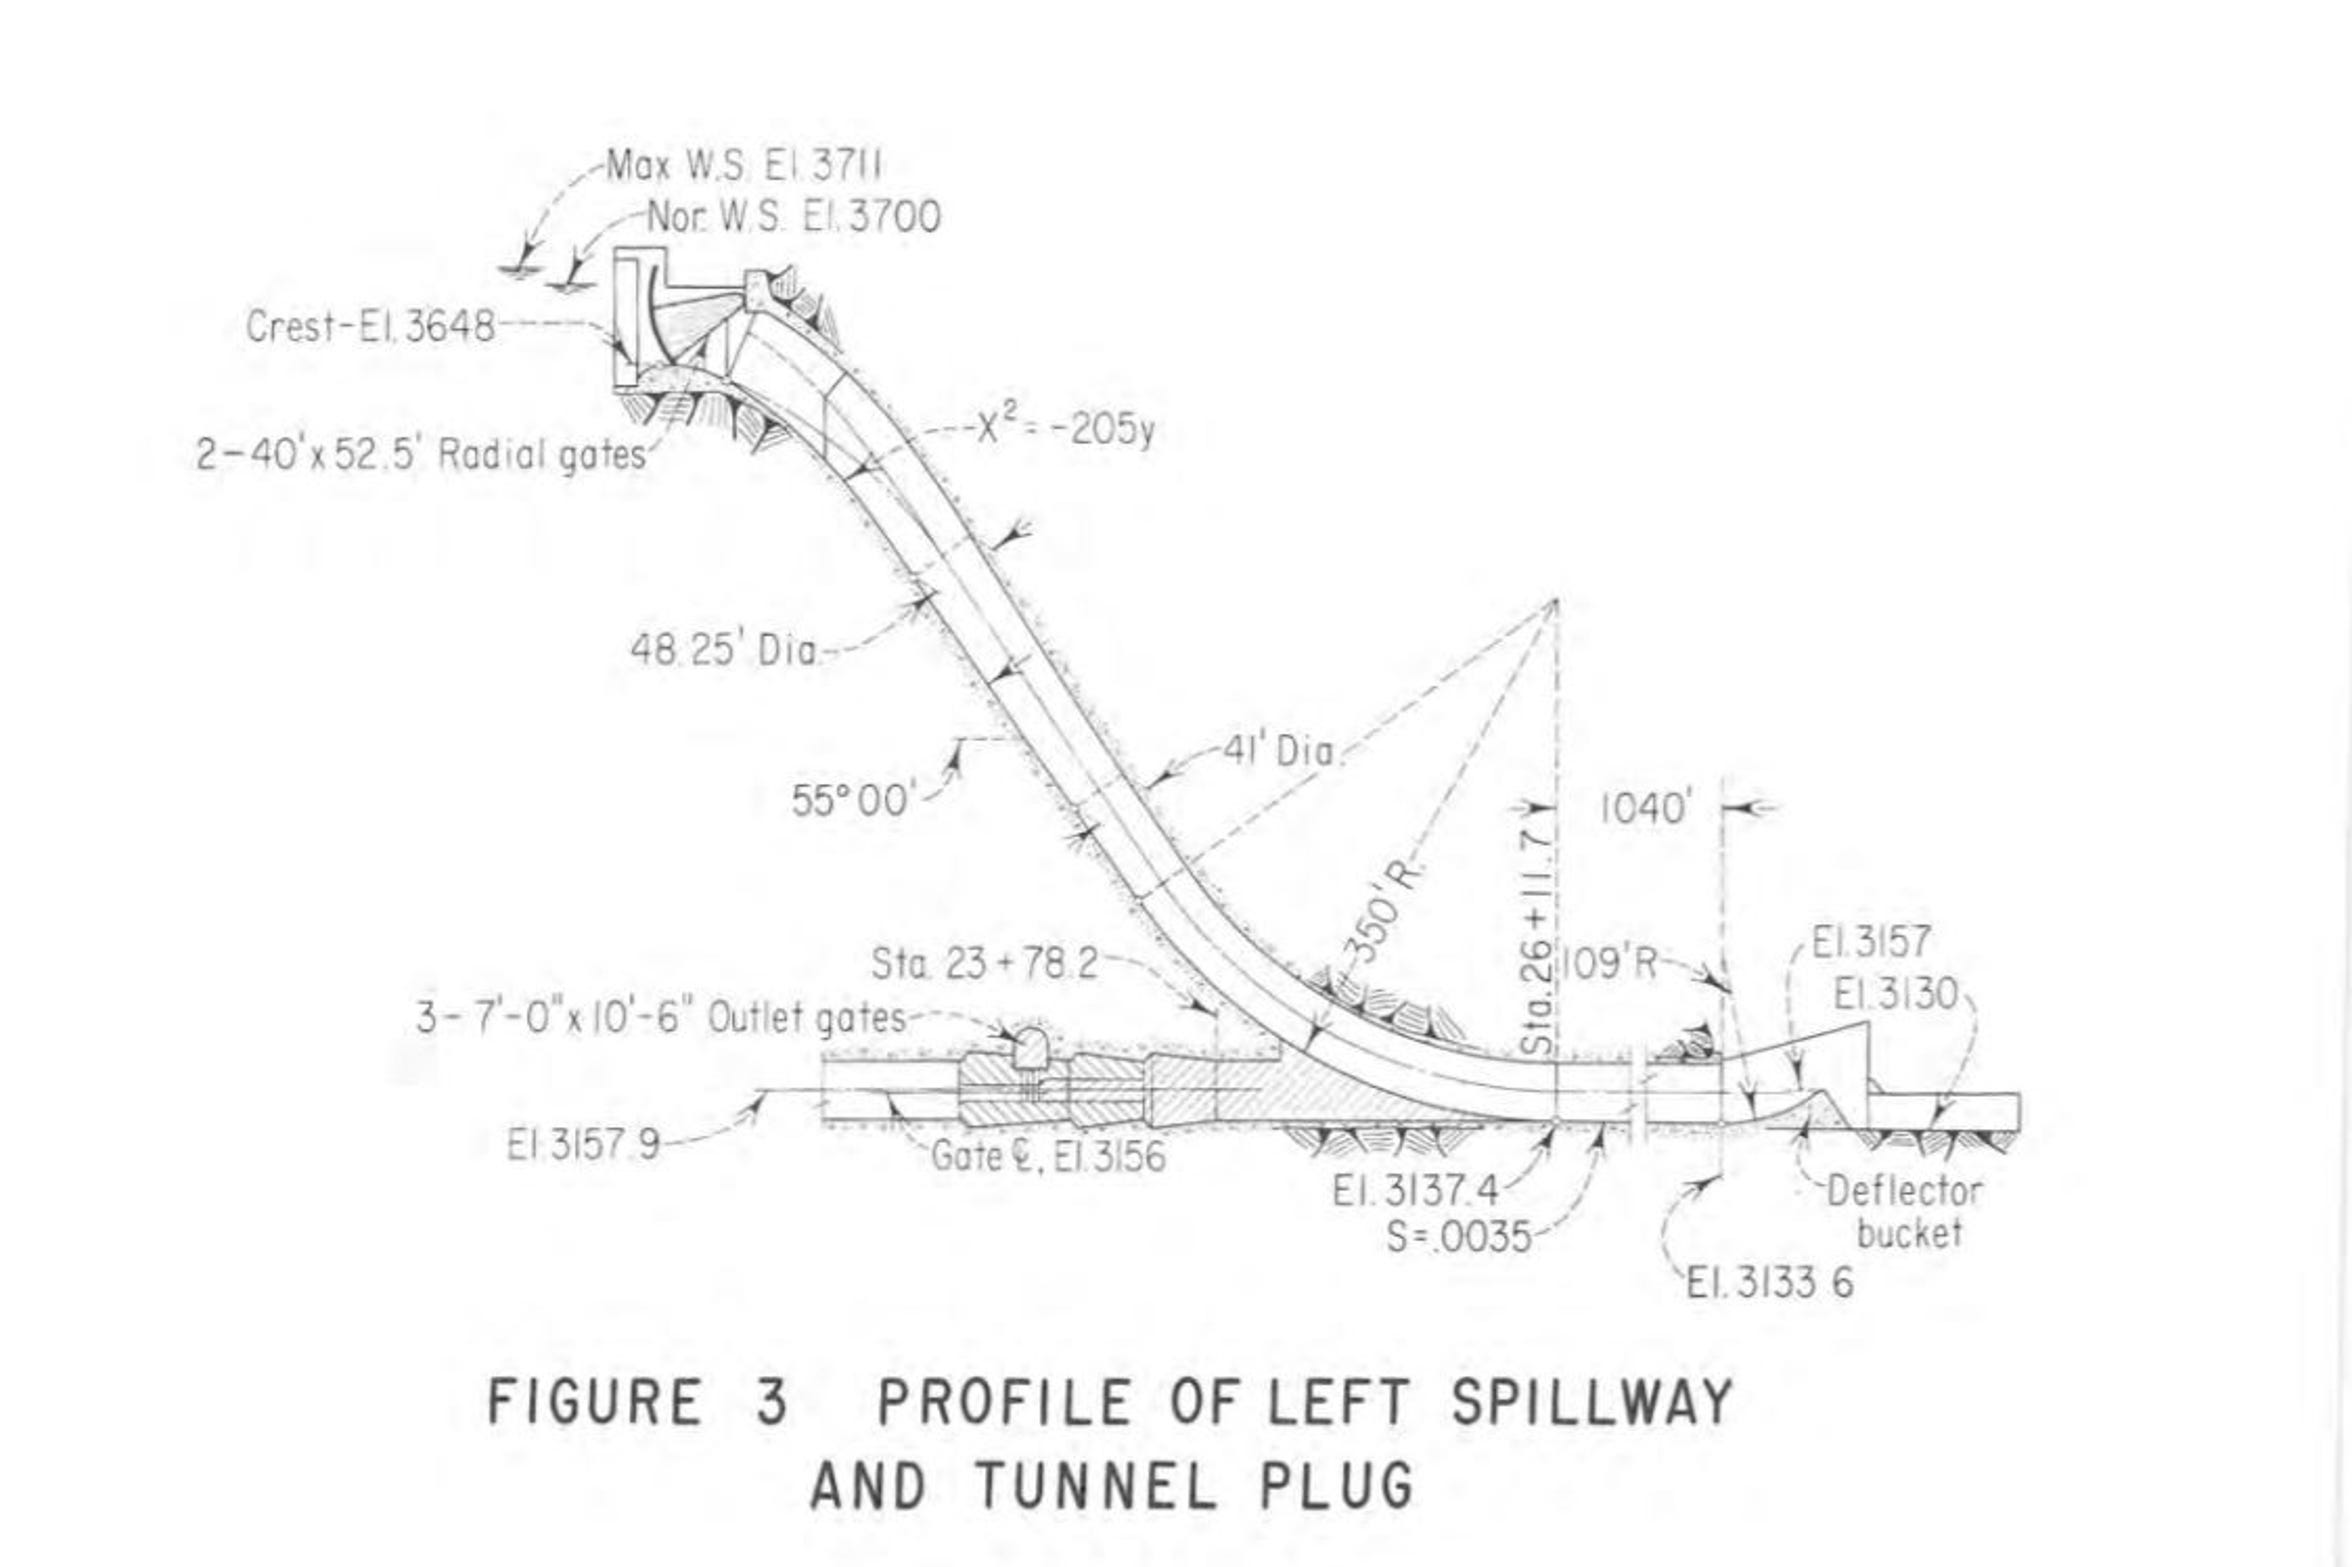 Diagram of left spillway and tunnel plug from a 1967 report.